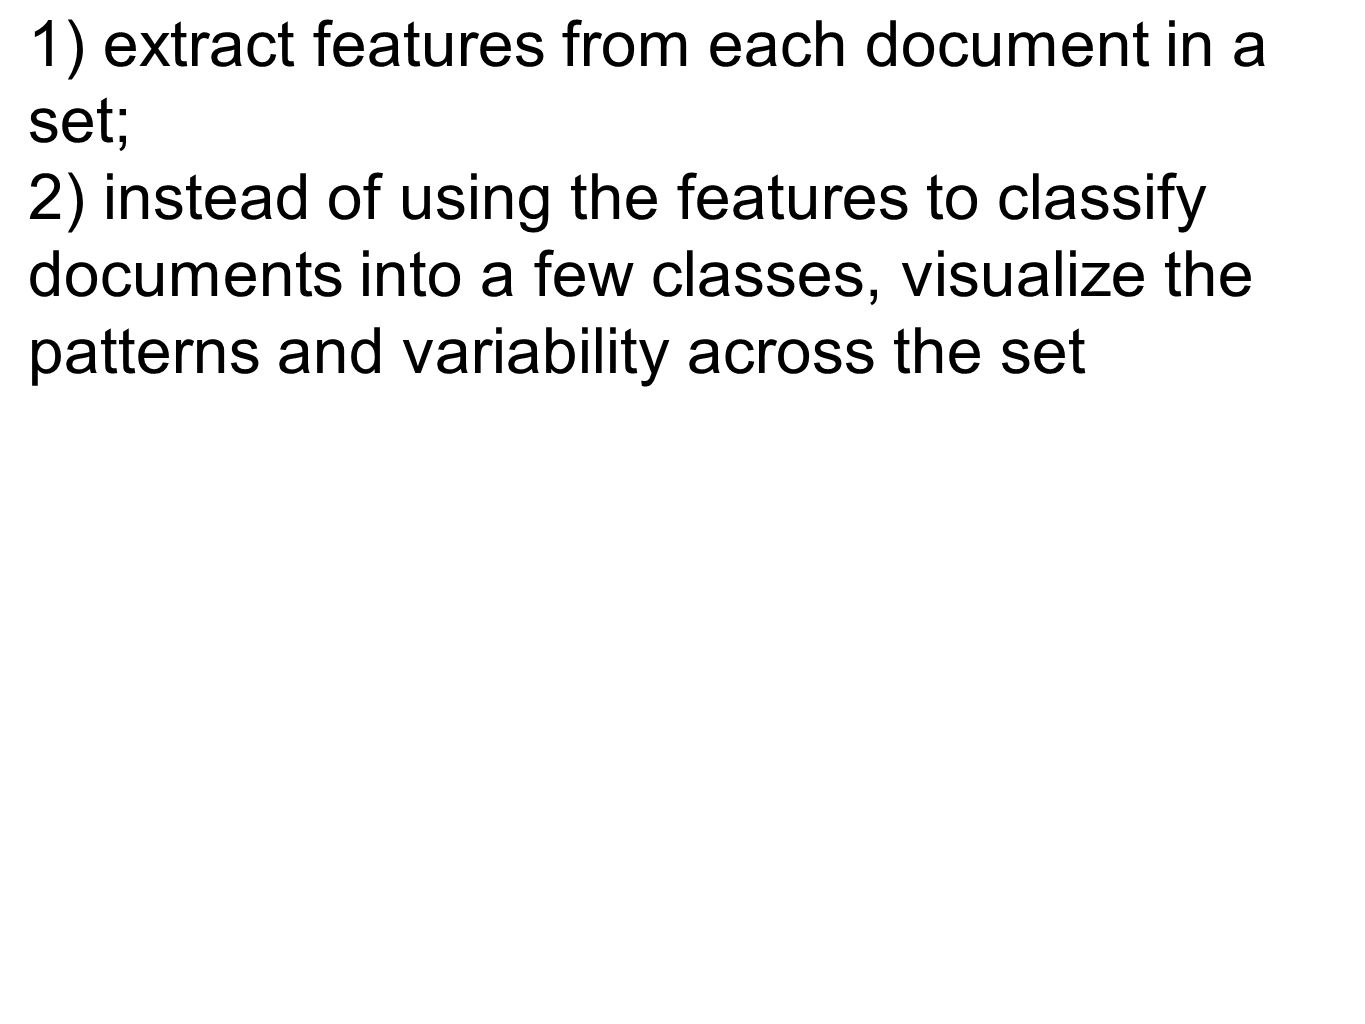 example of a new application which uses some of the same steps : 1) extract features from each document in a set; 2) instead of using the features to